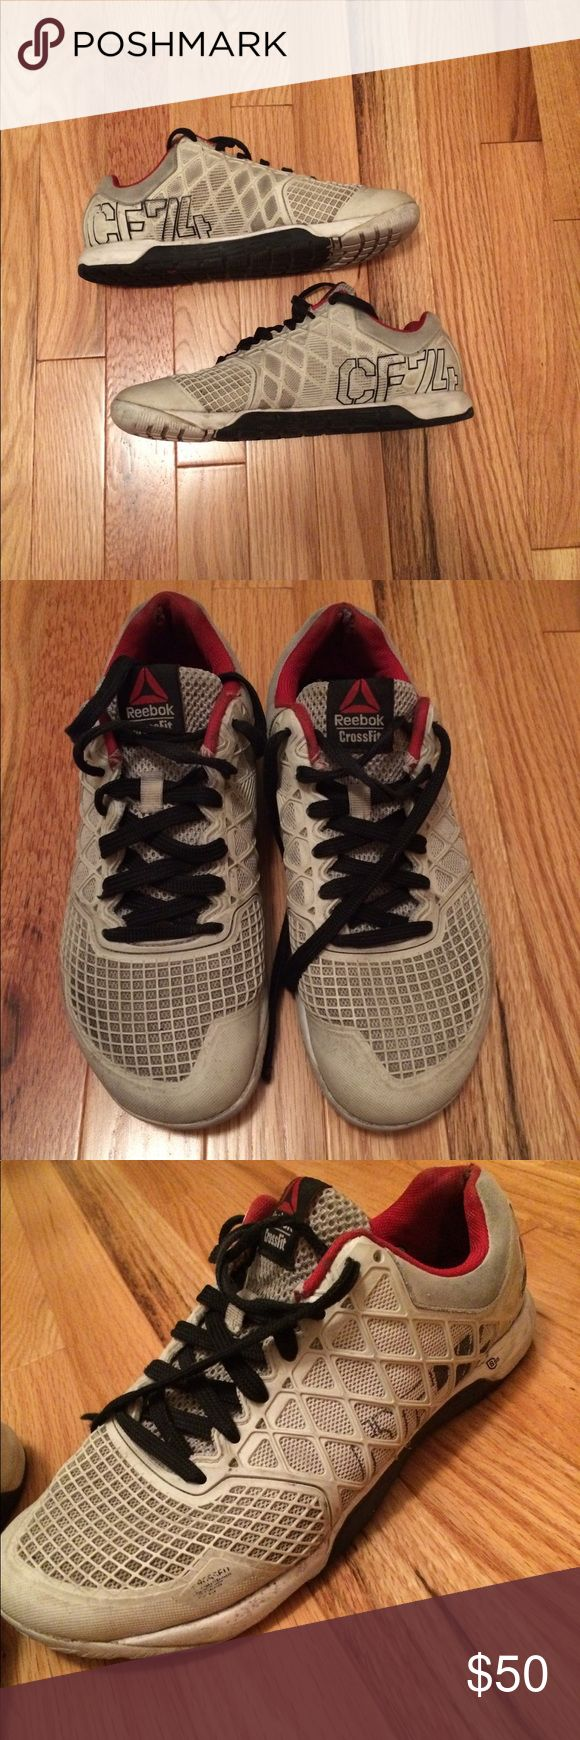 Reebok men's size 7.5 crossfit shoes Reebok crossfit men's shoes. Size 7.5. Gray red and black in color. Soles and insoles are in good condition. No stains or imperfections. Smoke free home. Will not come with box. Offers and trades are welcome. Listed on Ⓜ️ Reebok Shoes